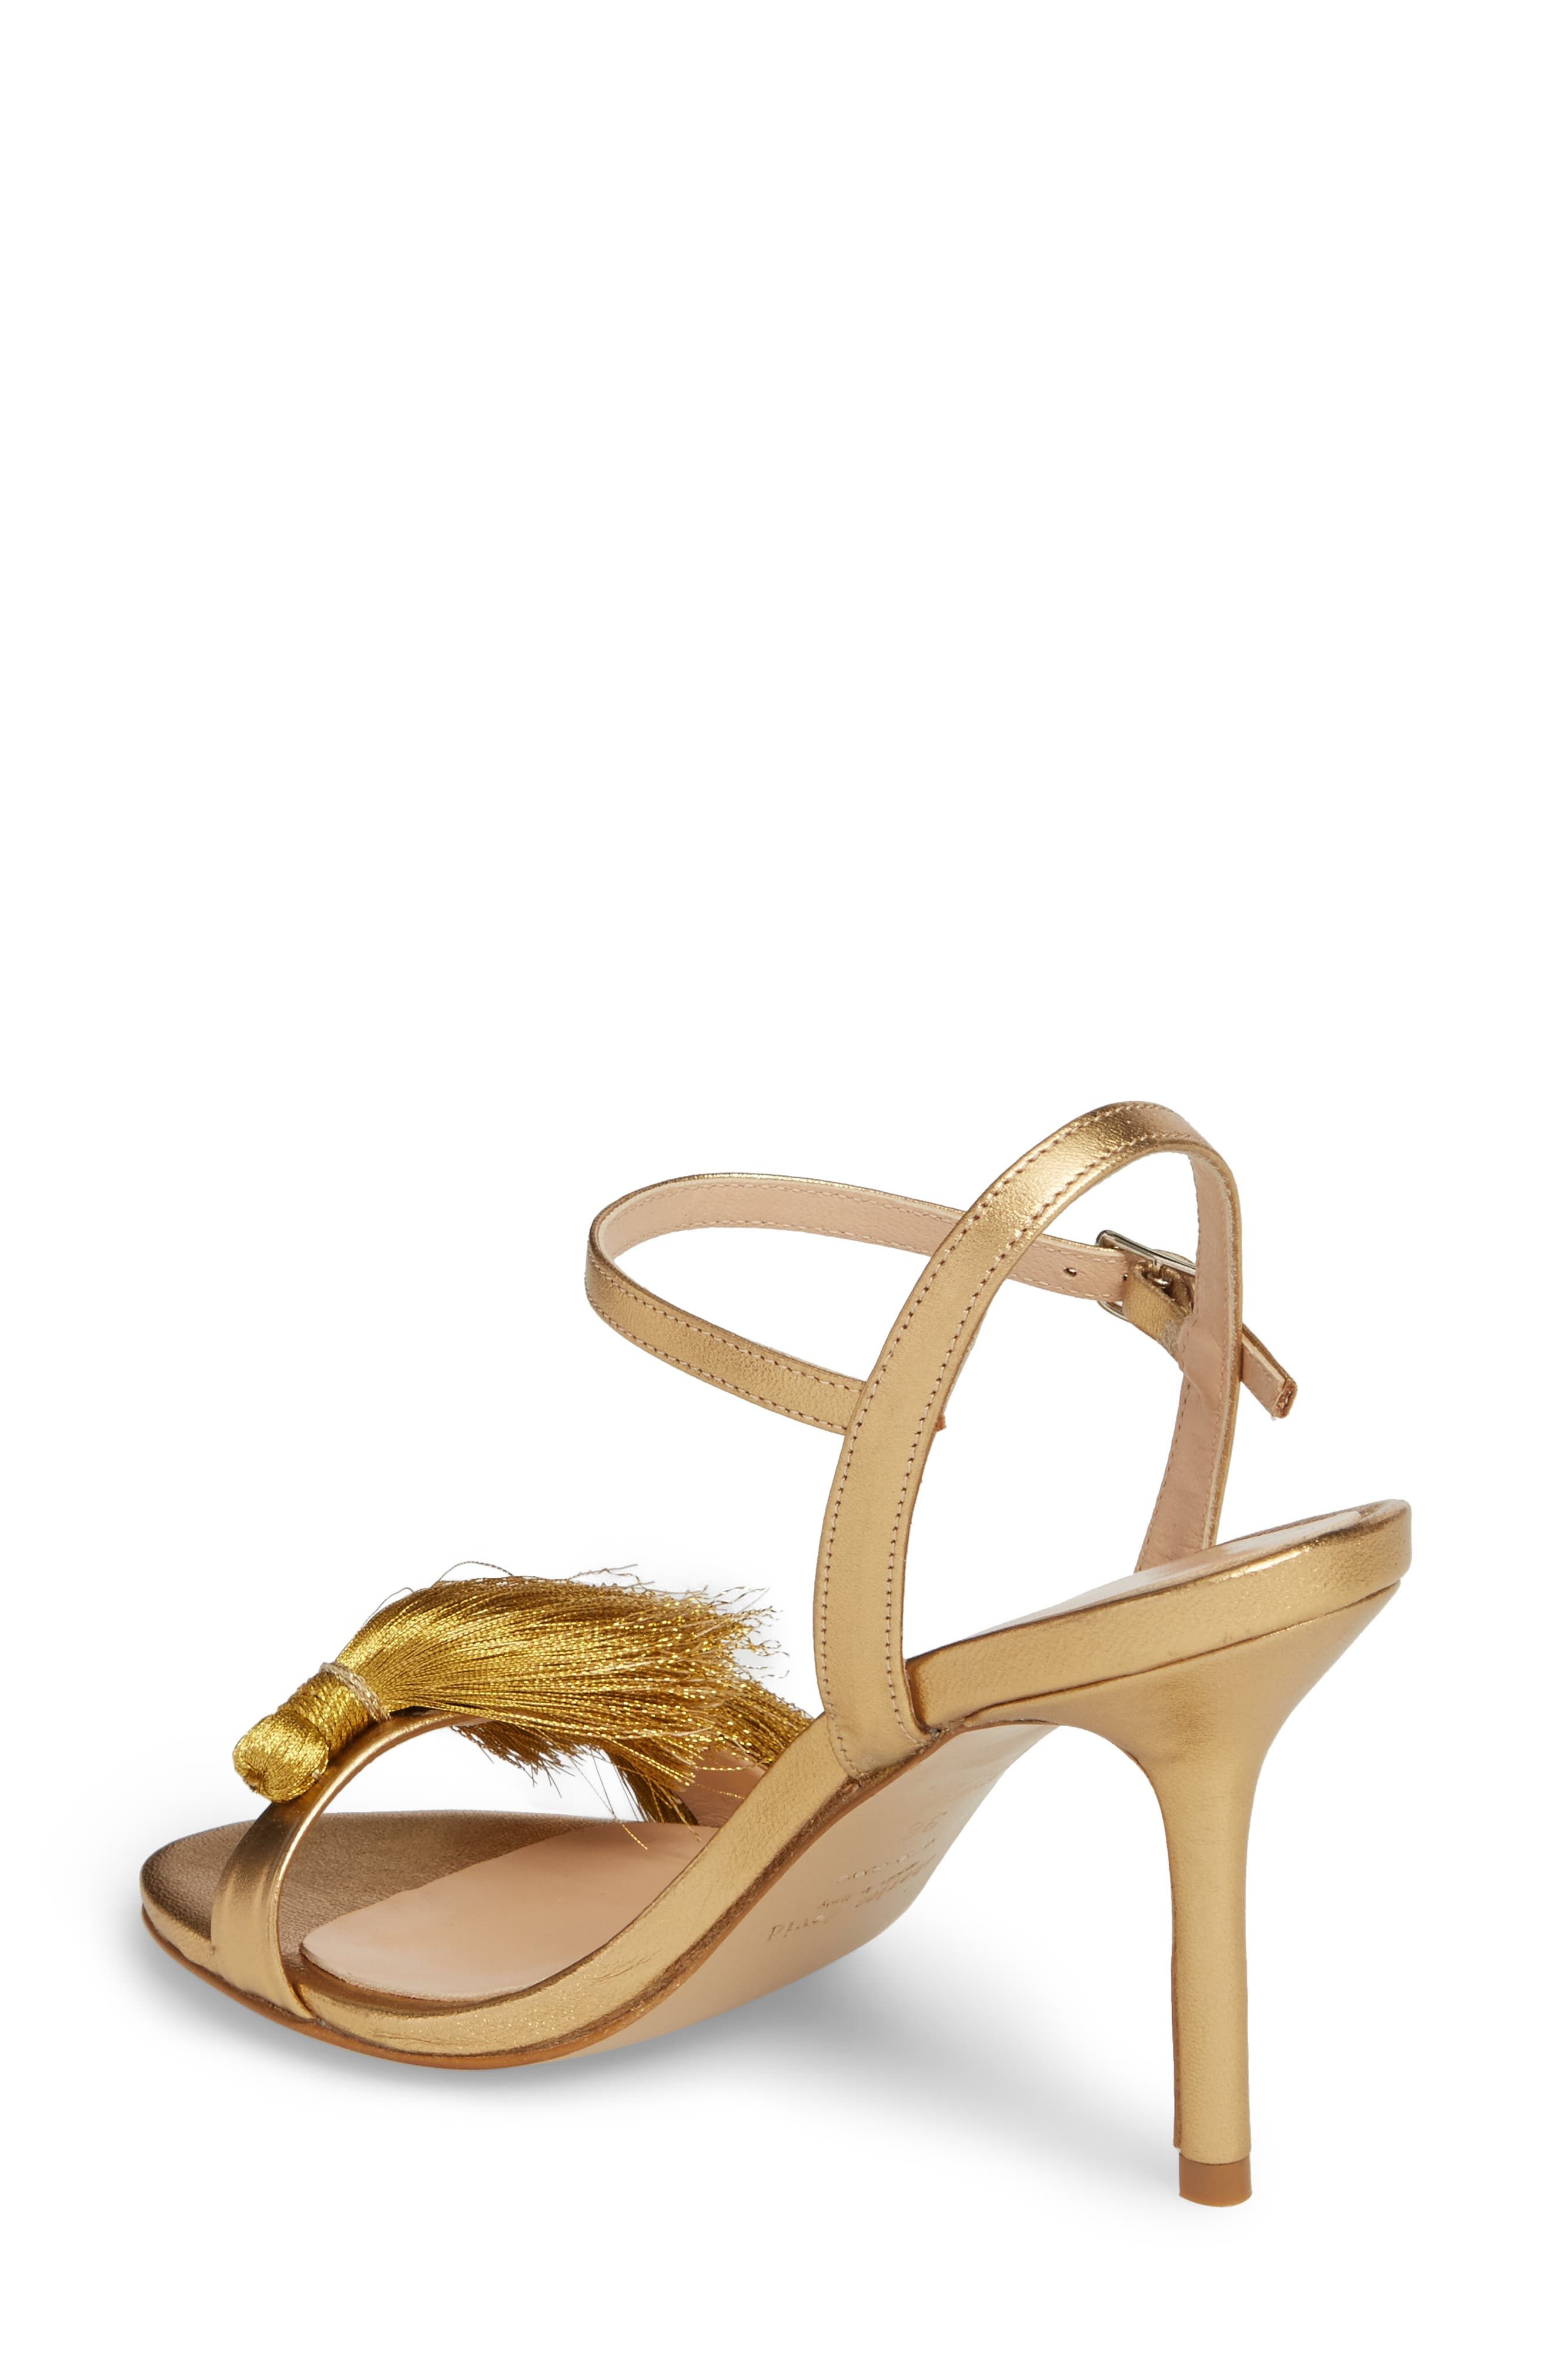 Sassy Tassel Sandal,                             Alternate thumbnail 2, color,                             GOLD LEATHER